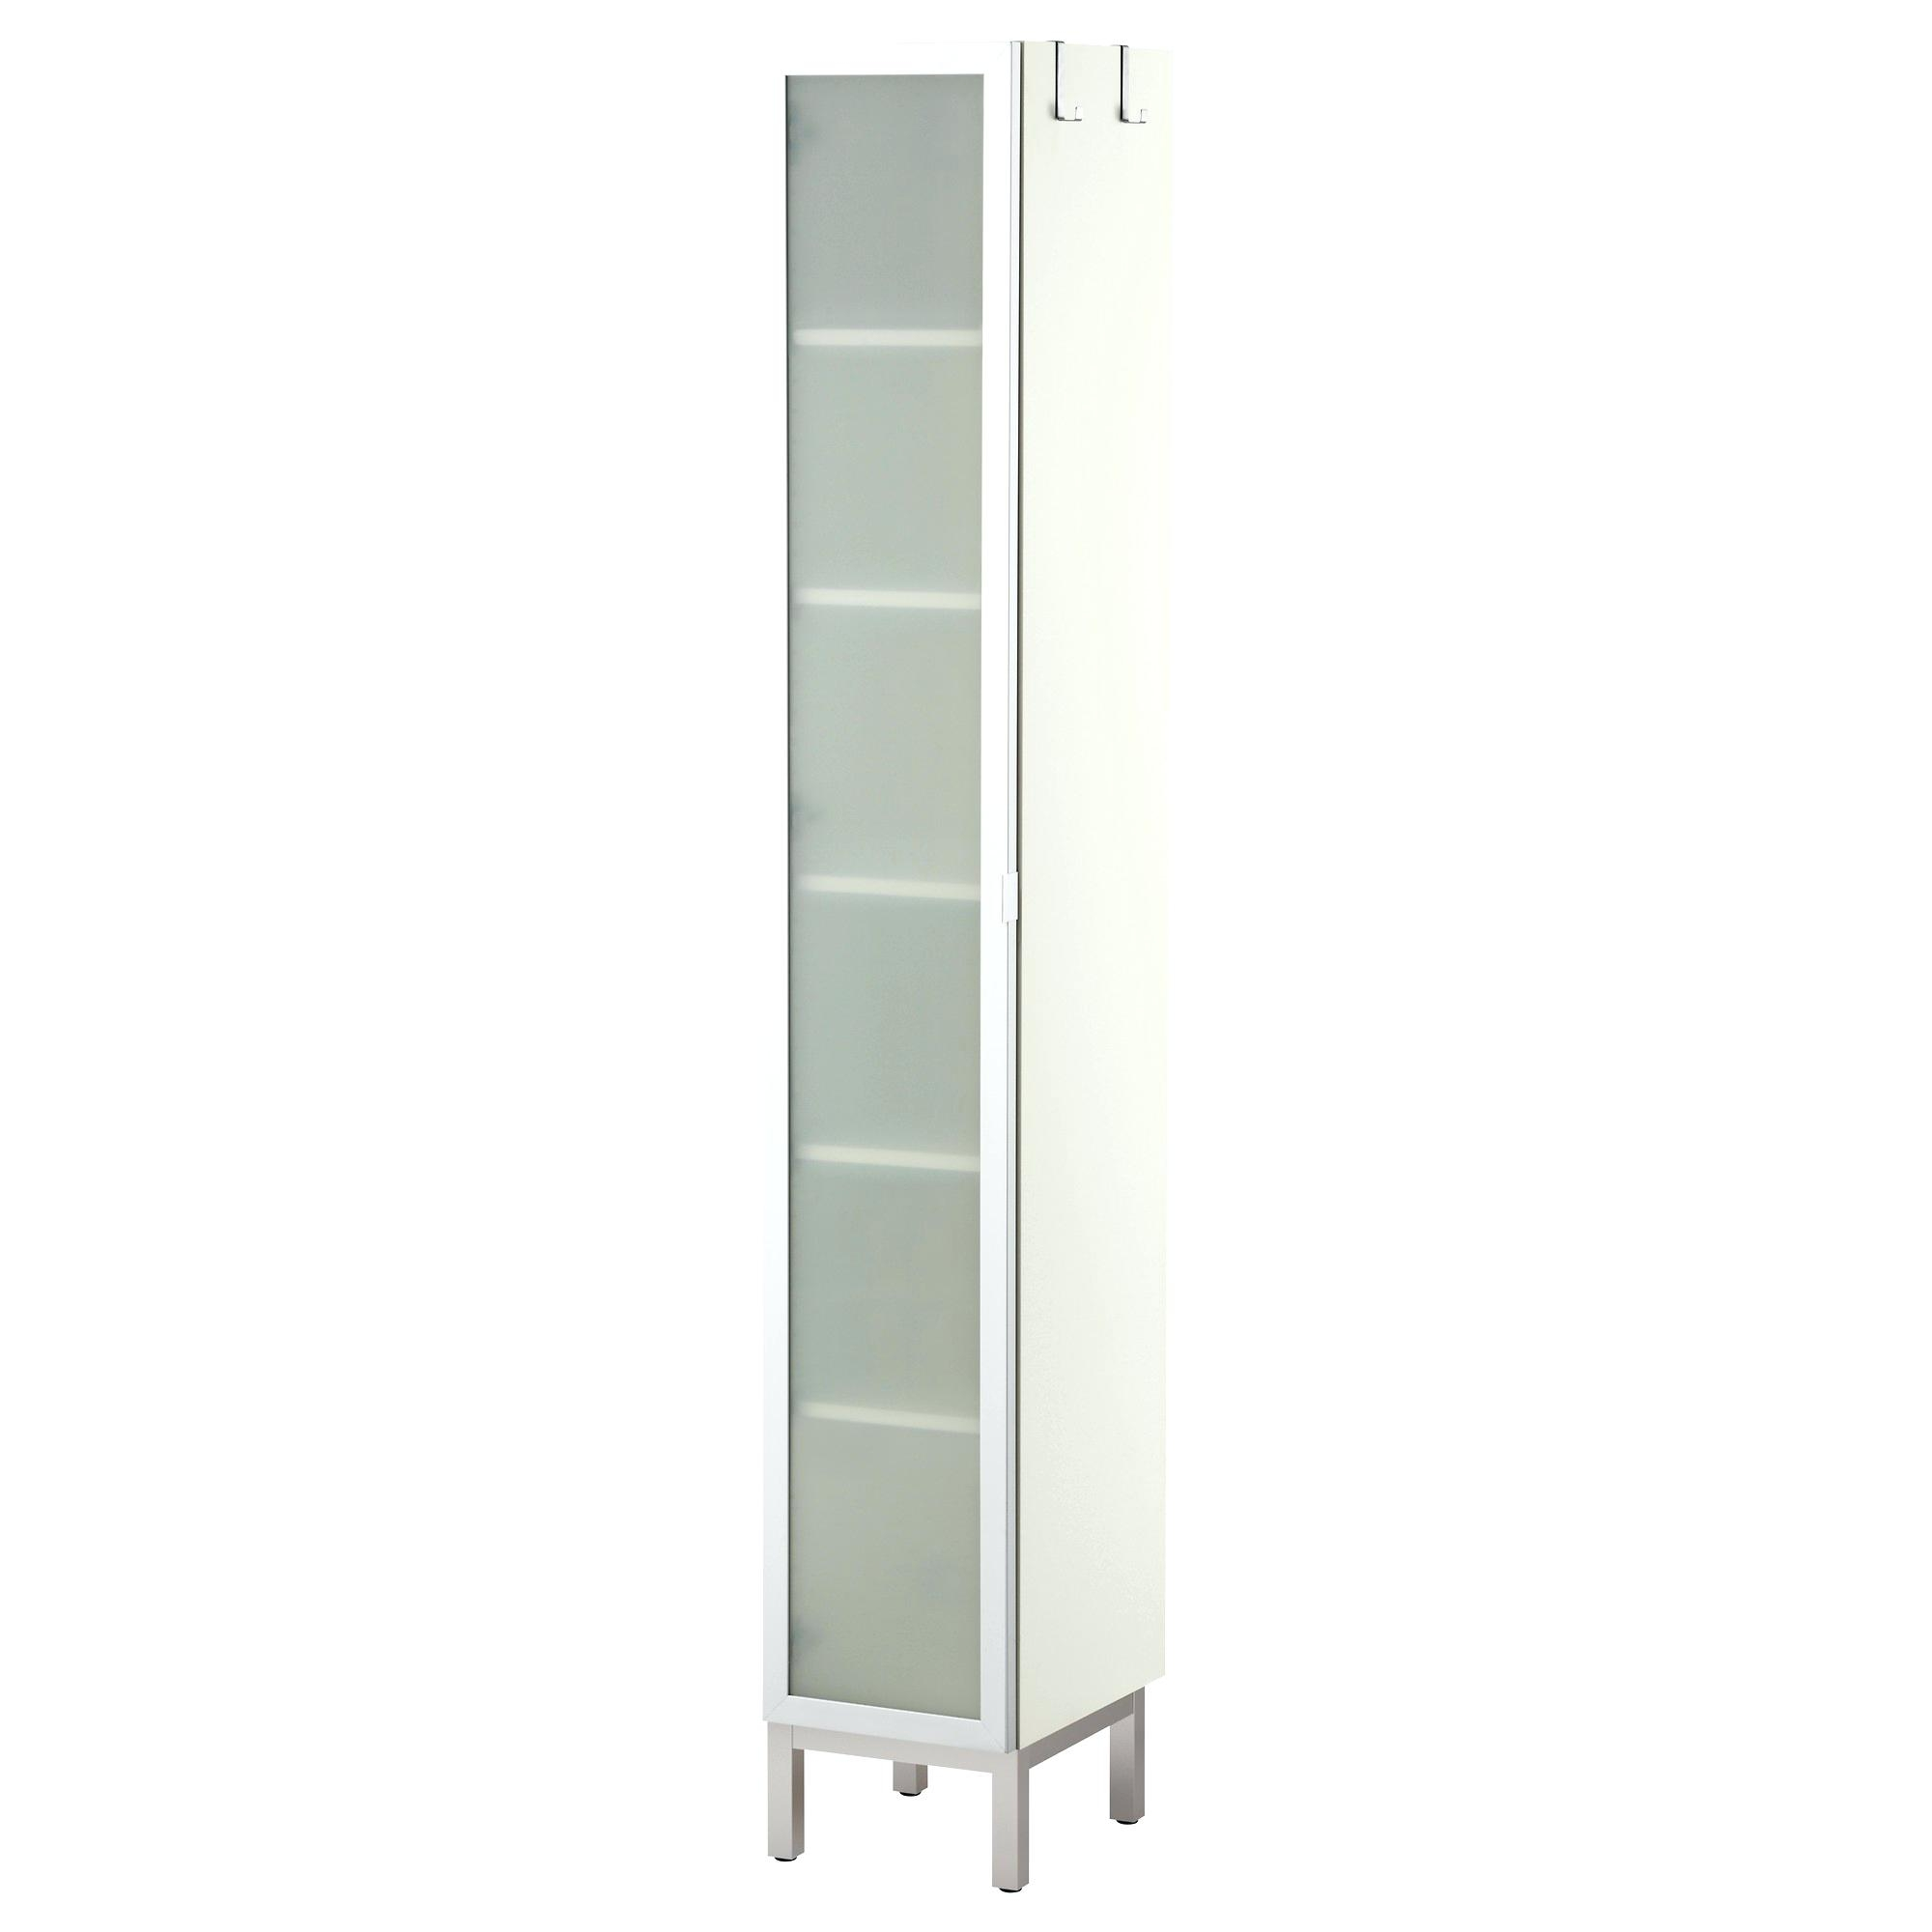 Cheap Sturdy Bookshelves Display Cabinet Shelving Unit Shelves With Regard To Free Standing Glass Shelves (Image 5 of 15)